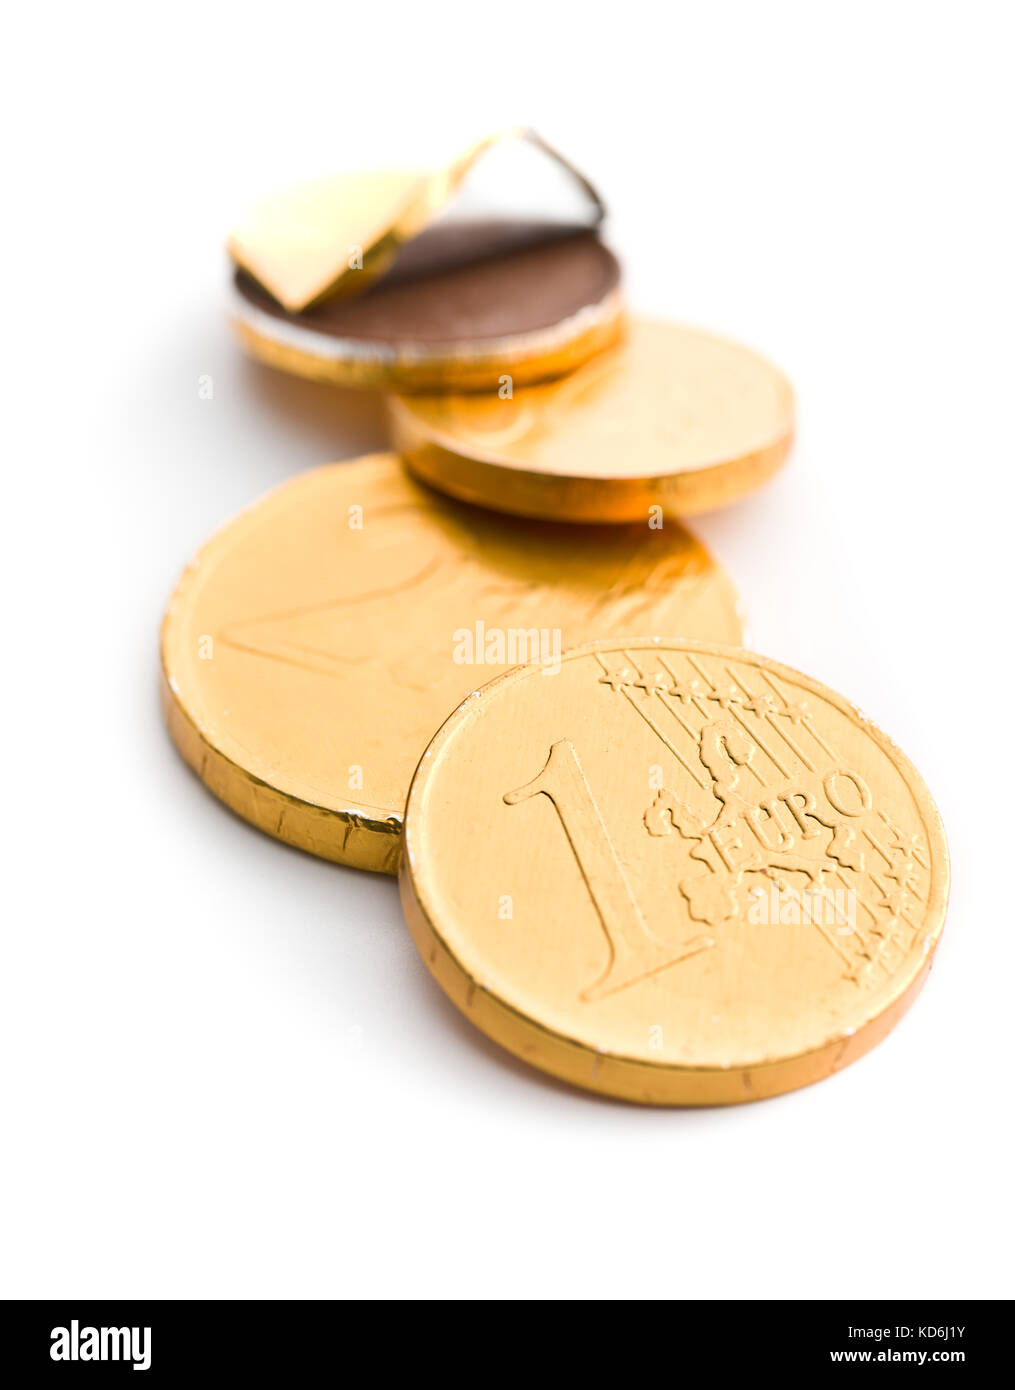 Chocolate money stock photos chocolate money stock images alamy chocolate coins isolated on white background stock image spiritdancerdesigns Image collections